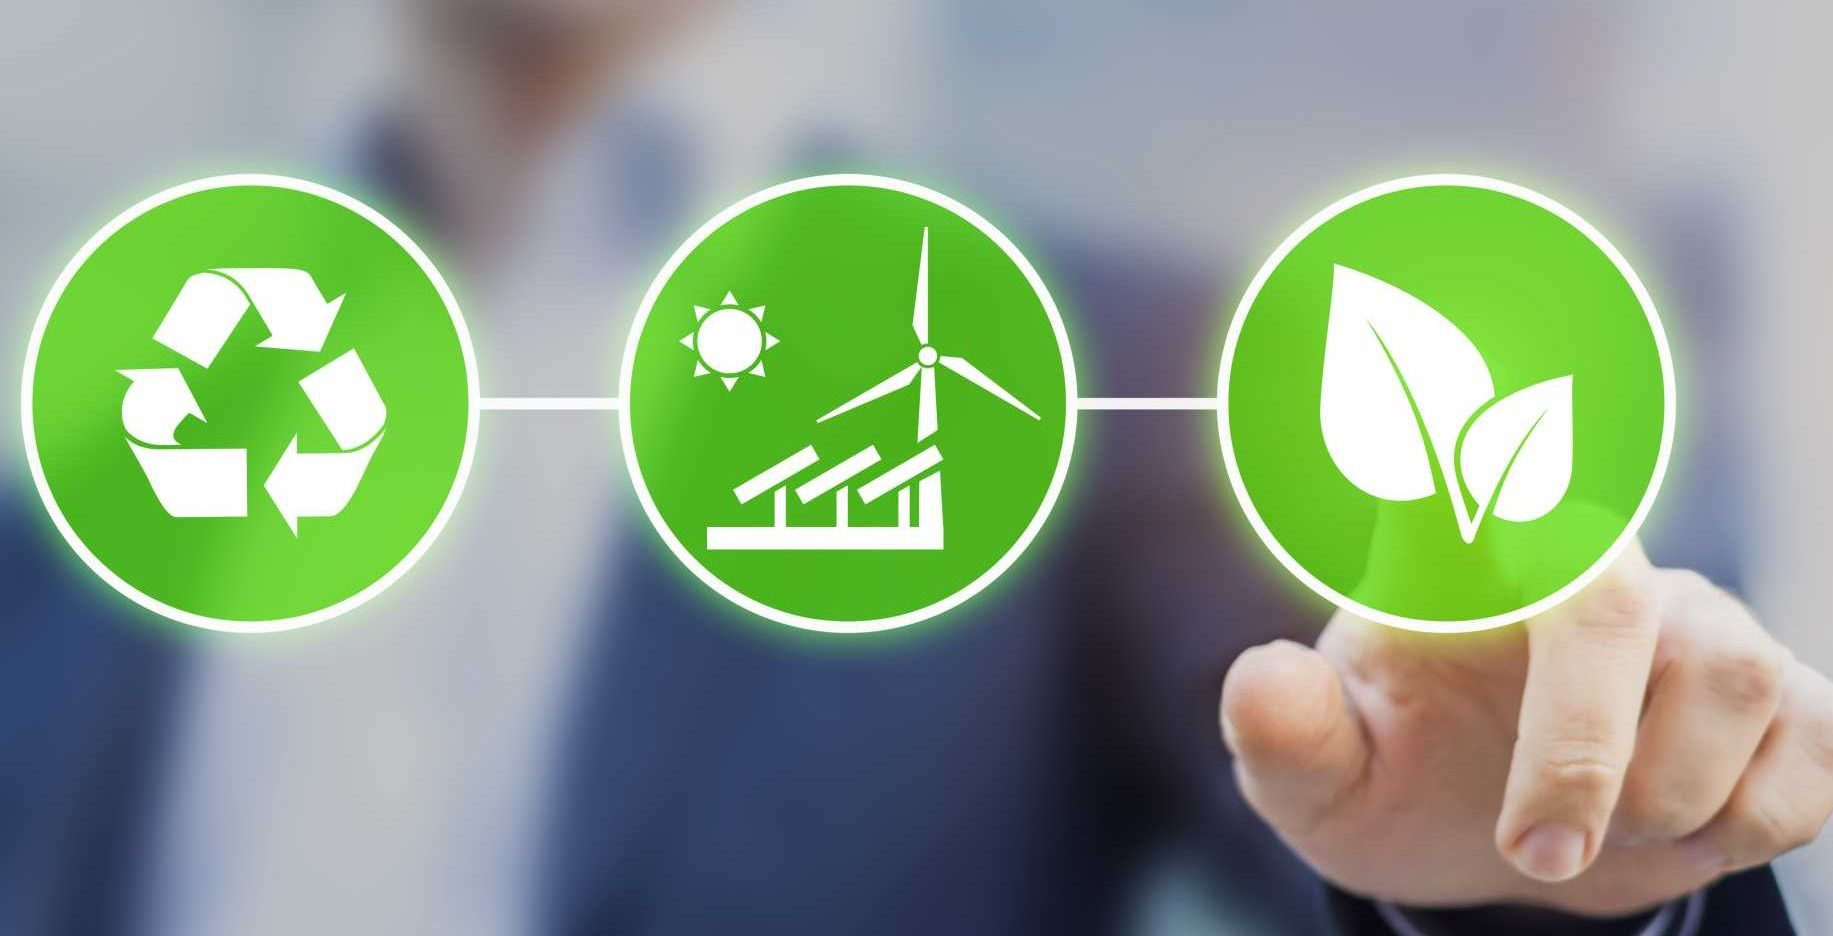 Remanufacture sustainable manufacturing - Sustainability -Concept about sustainable development, ecology and environment protection. Person touching green buttons with icons - shutterstock_502293859